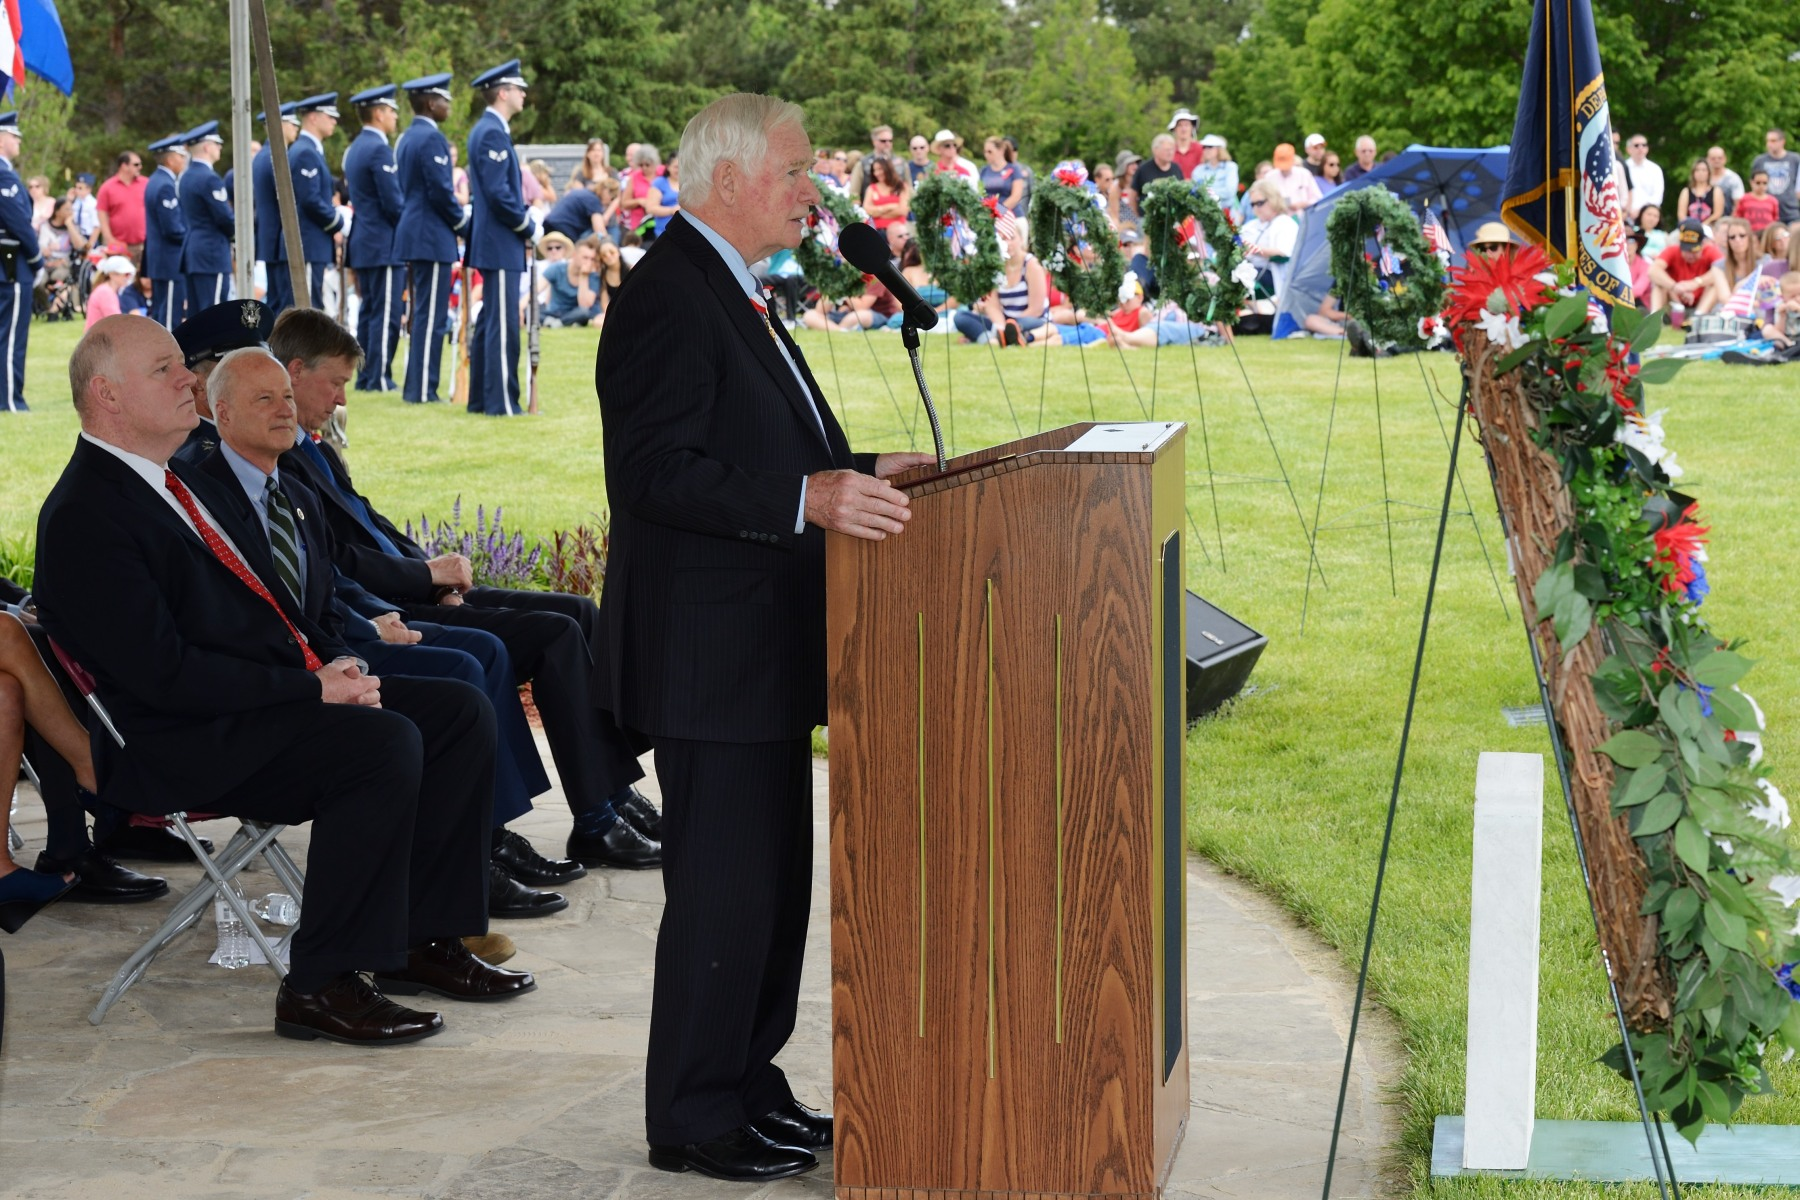 """Each marker is a reminder that death is never anonymous. Each person here has a name and a past. Each one had hopes and fears, love and loss. They came from across the U.S. and fought around the world, alongside allies such as Canada,"" said His Excellency."